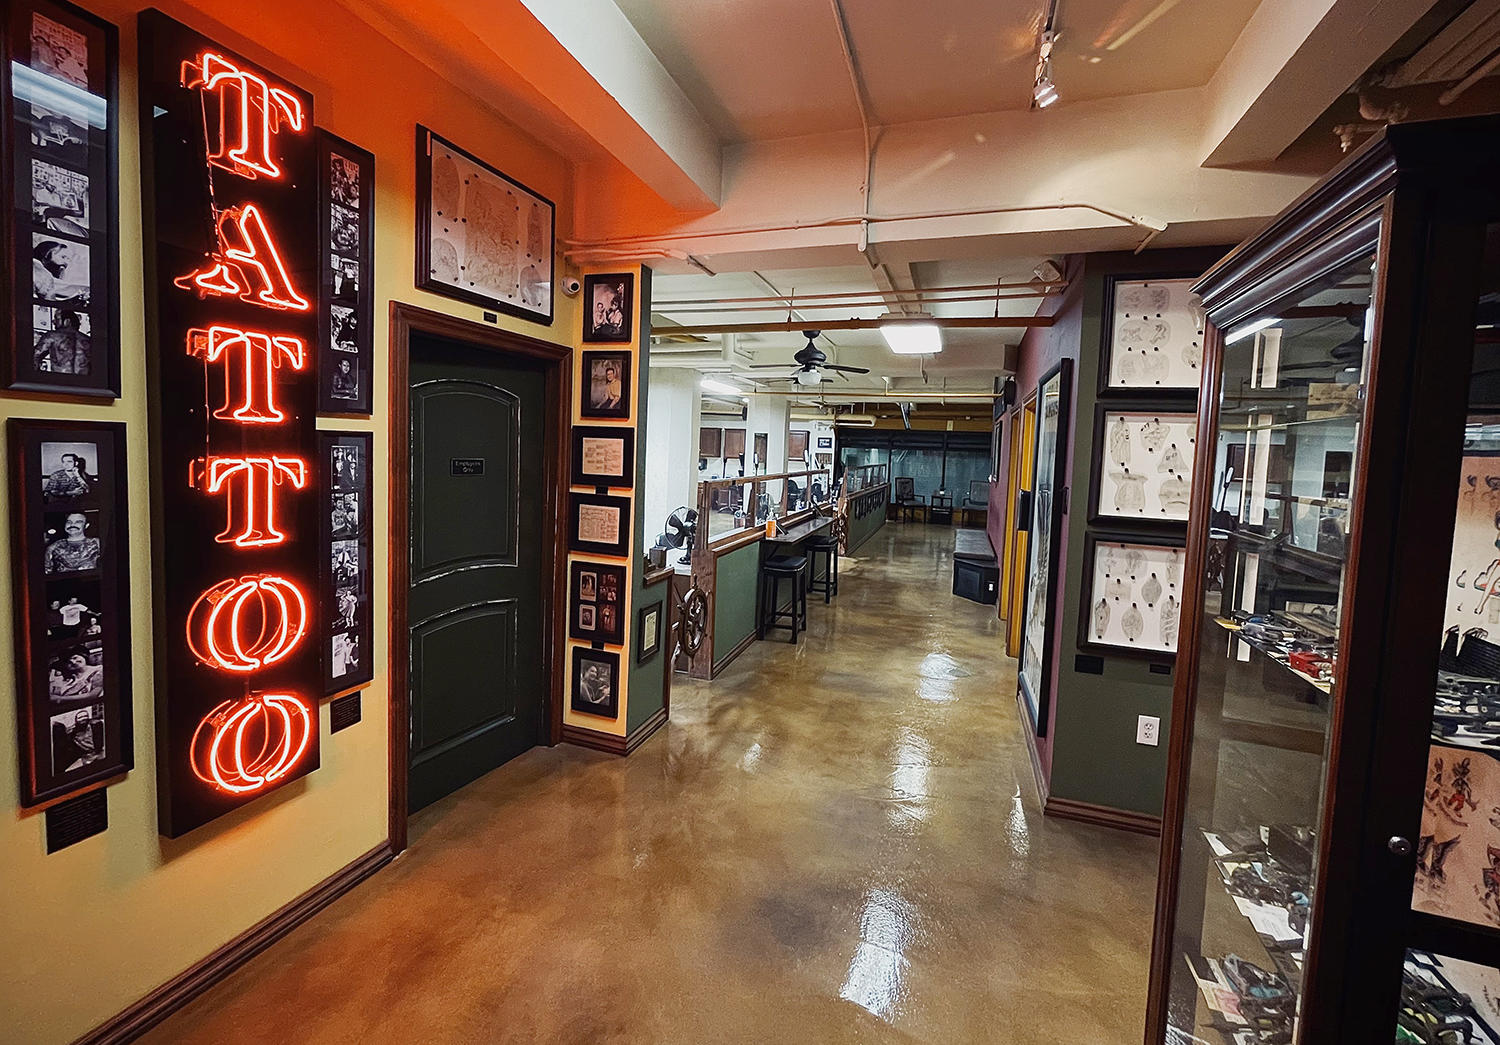 Outer Limits Tattoo studio in Long beach, California, oldest active running shop in America